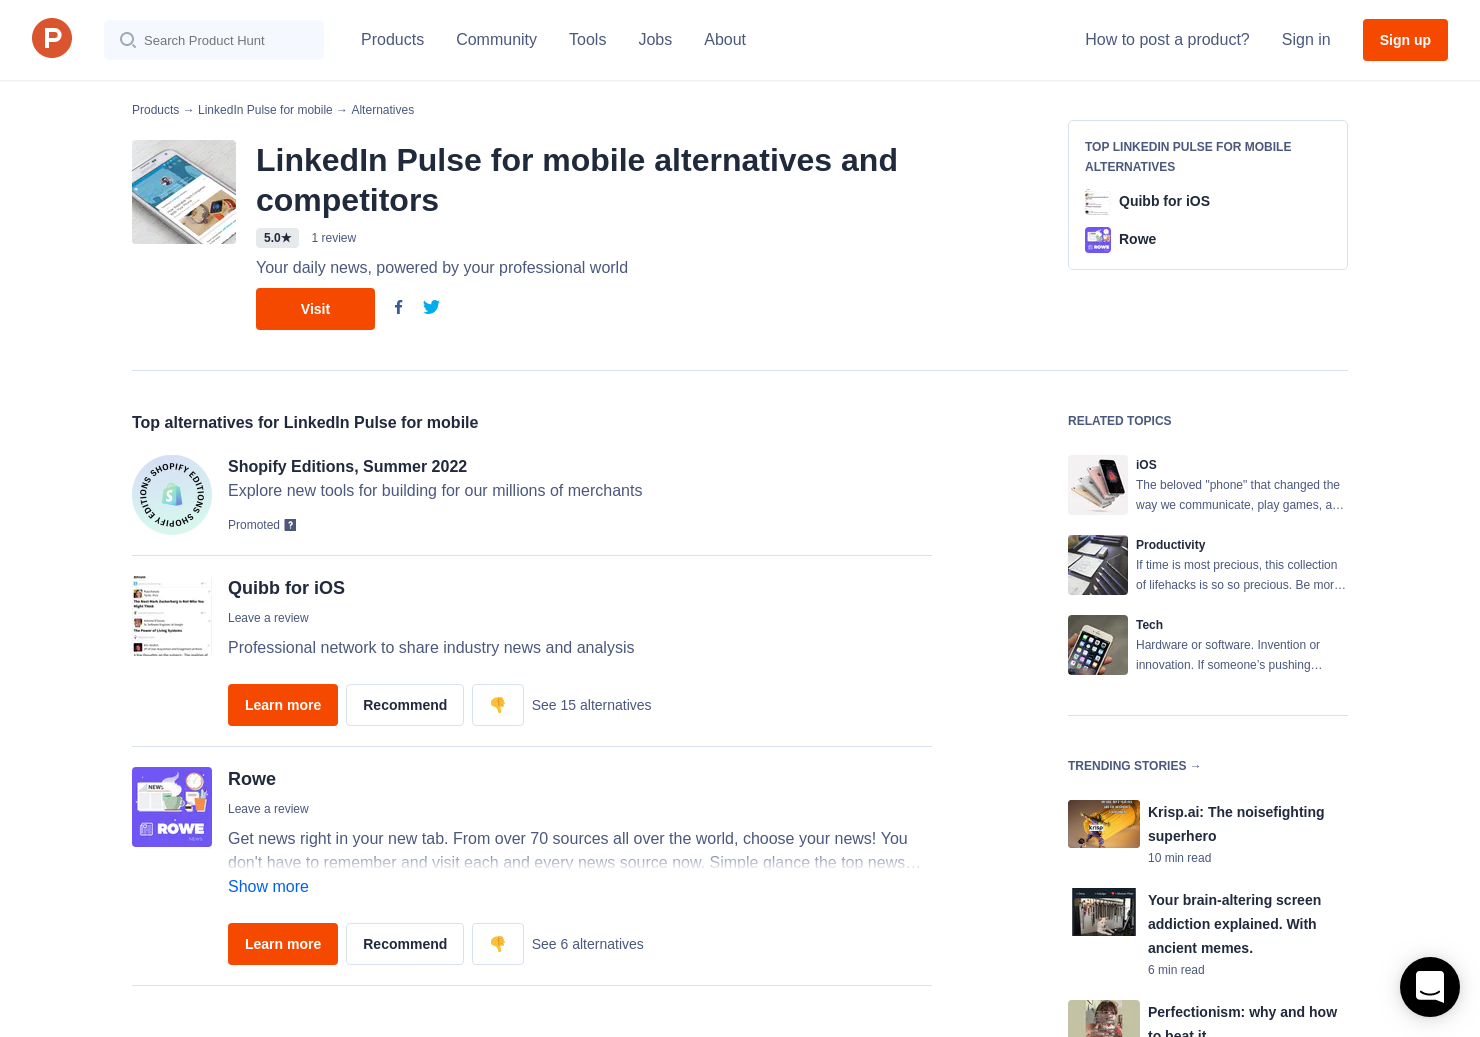 3 Alternatives to LinkedIn Pulse for mobile for iPhone   Product Hunt